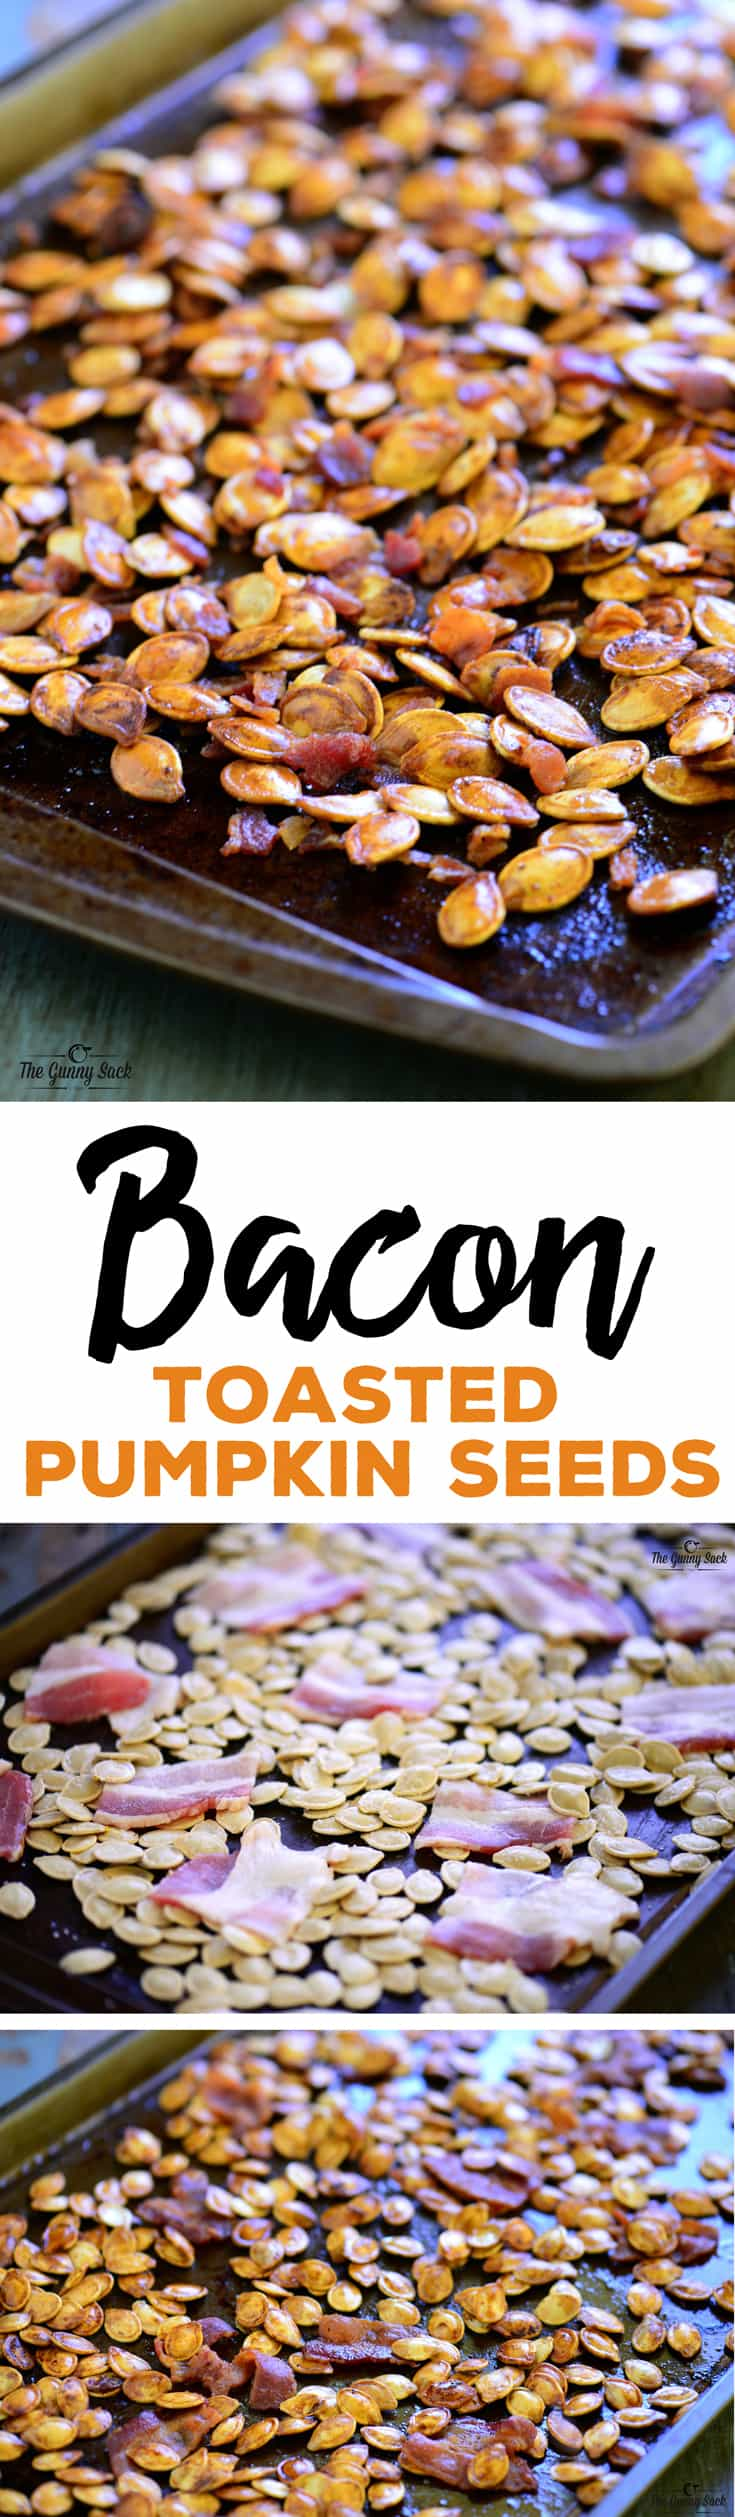 This crave-worthy Bacon Roasted Pumpkin Seeds recipe makes the best toasted pumpkin seeds EVER! Everyone will love this easy snack or appetizer with bacon! #bacon #jackolantern #Halloween